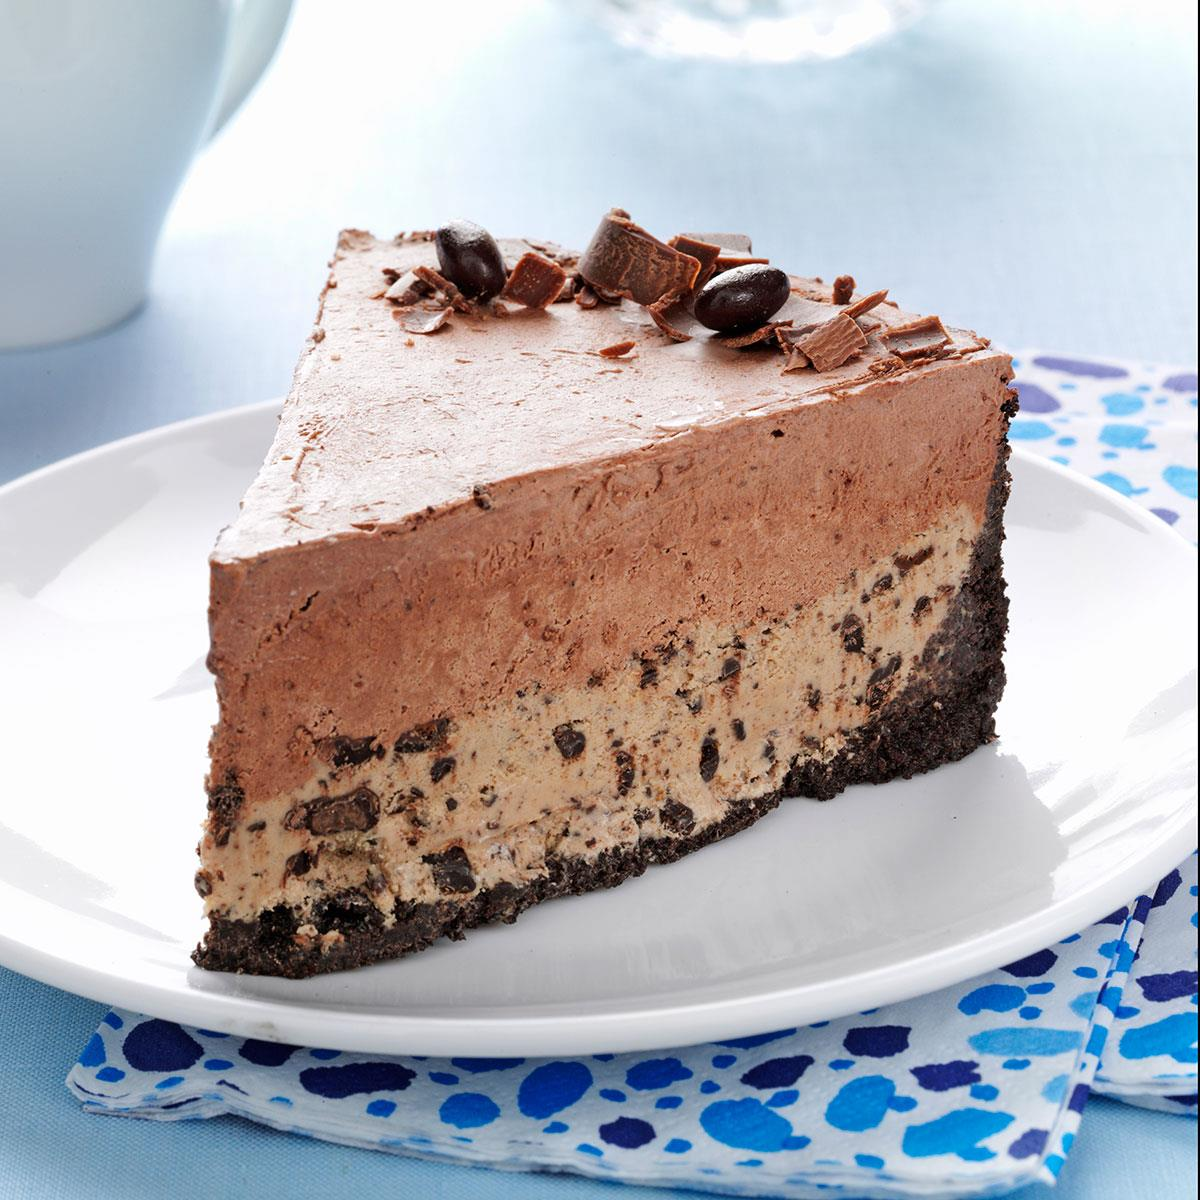 Chocolate Coffee Bean Ice Cream Cake Taste of Home